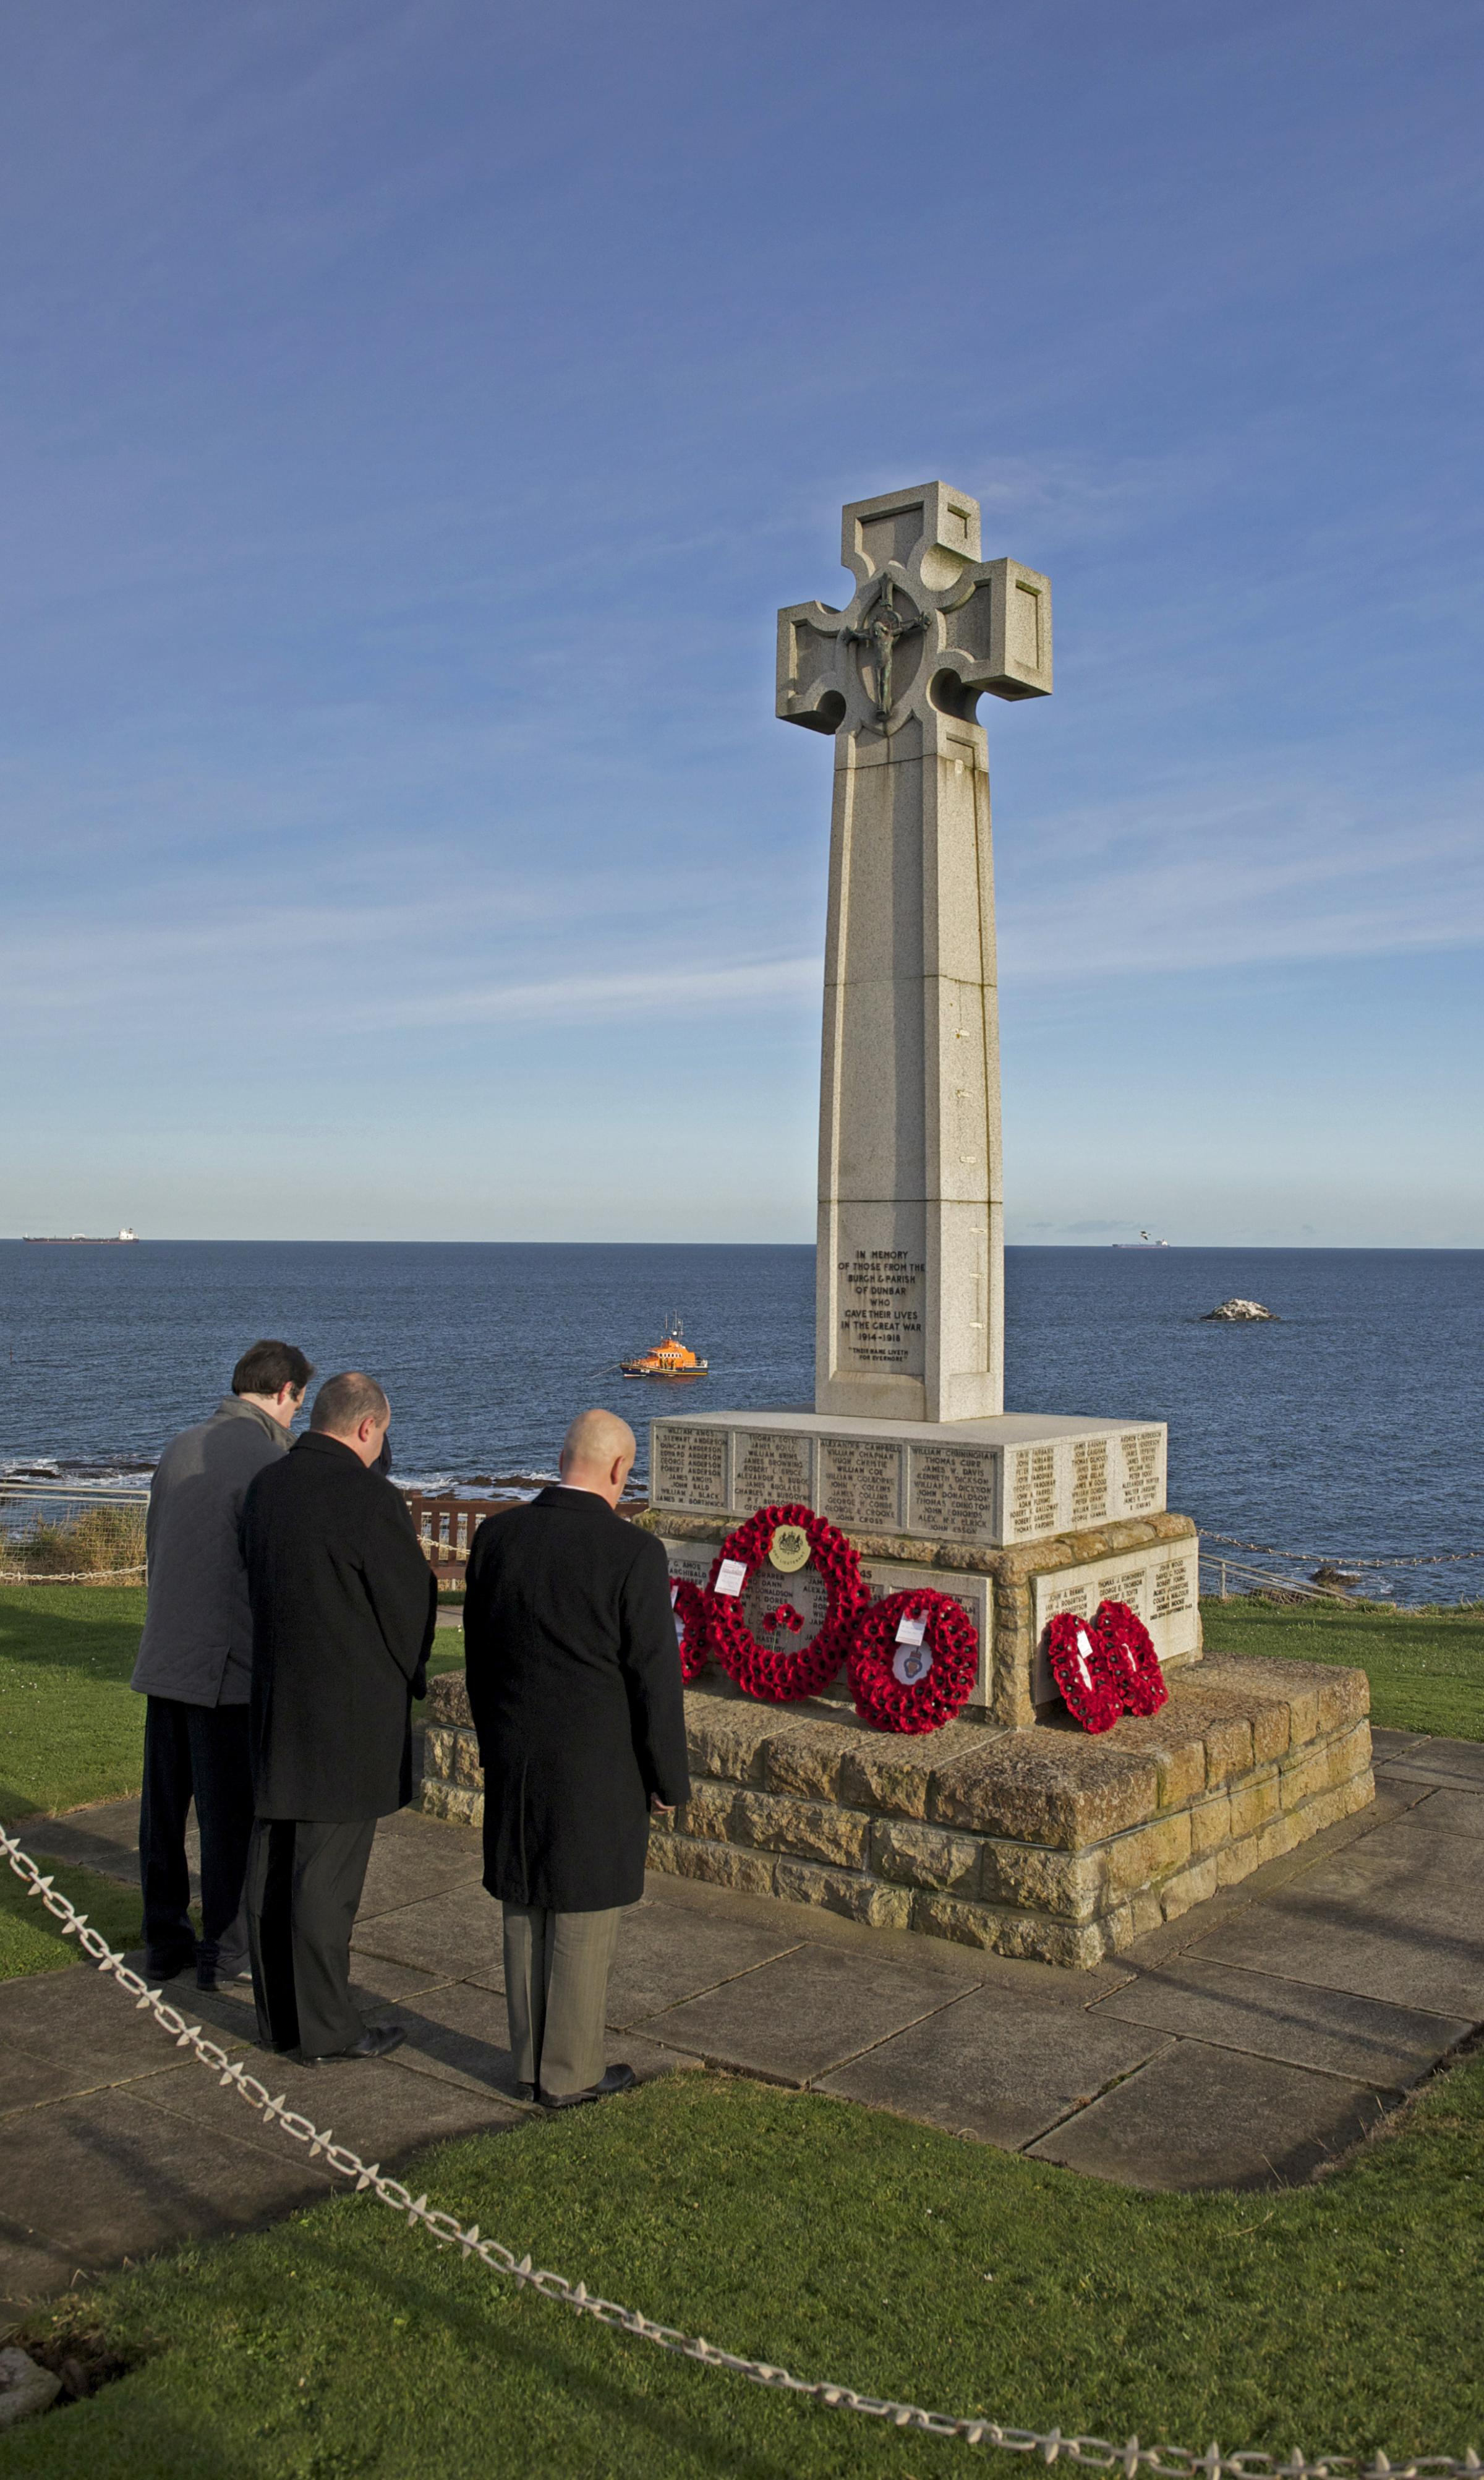 Restoration work could be carried out at Dunbar's War Memorial